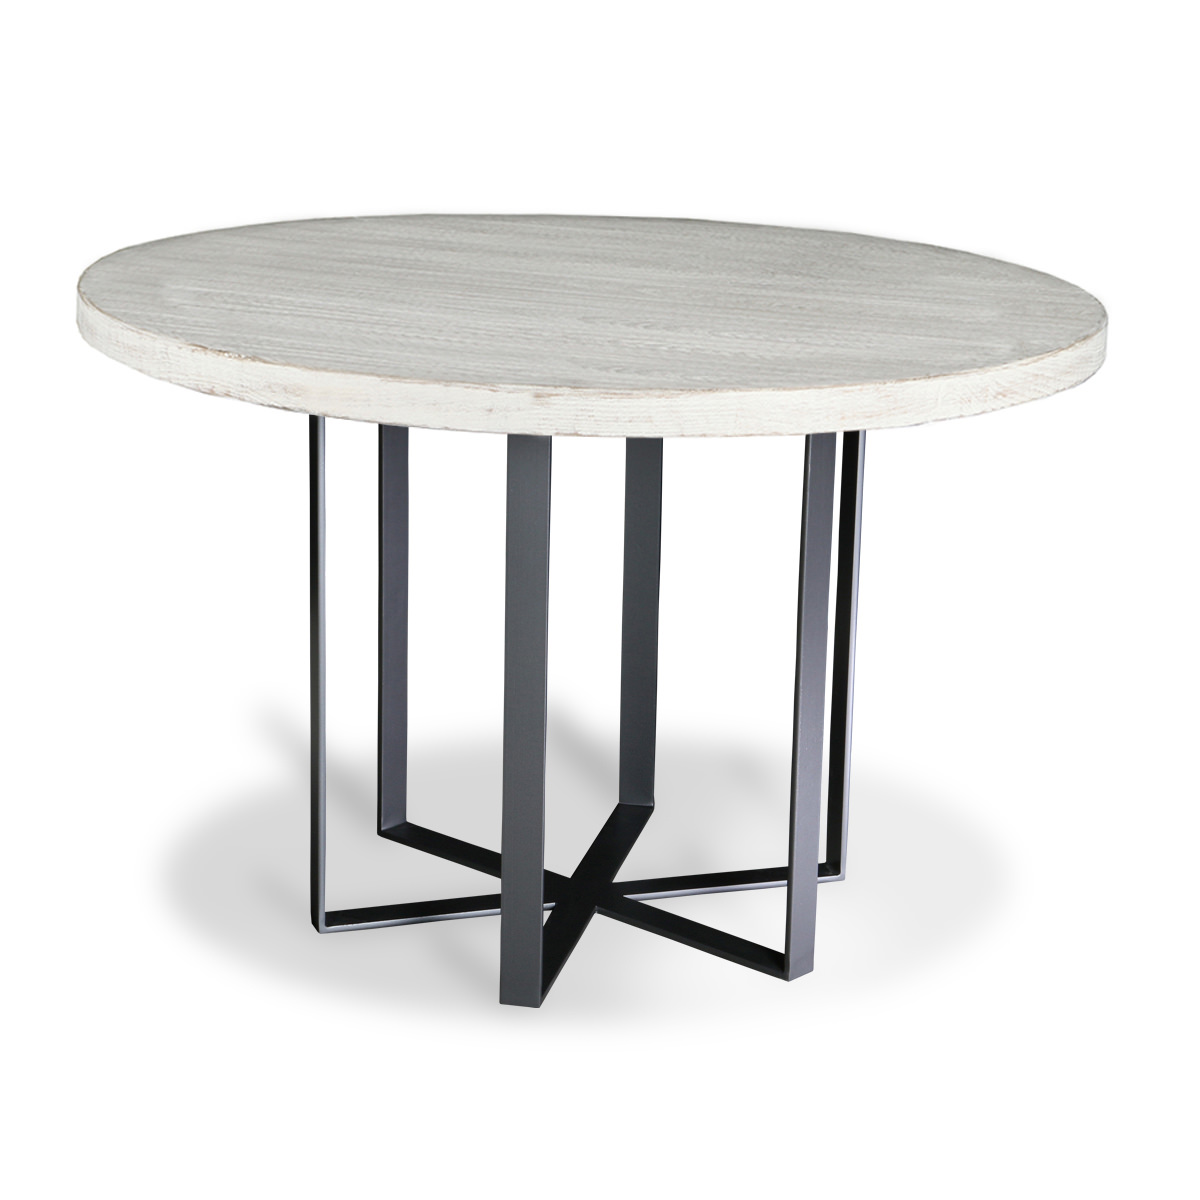 Wrought Iron Round Table.South Cone Home Austin Wrought Iron Round Dining Table